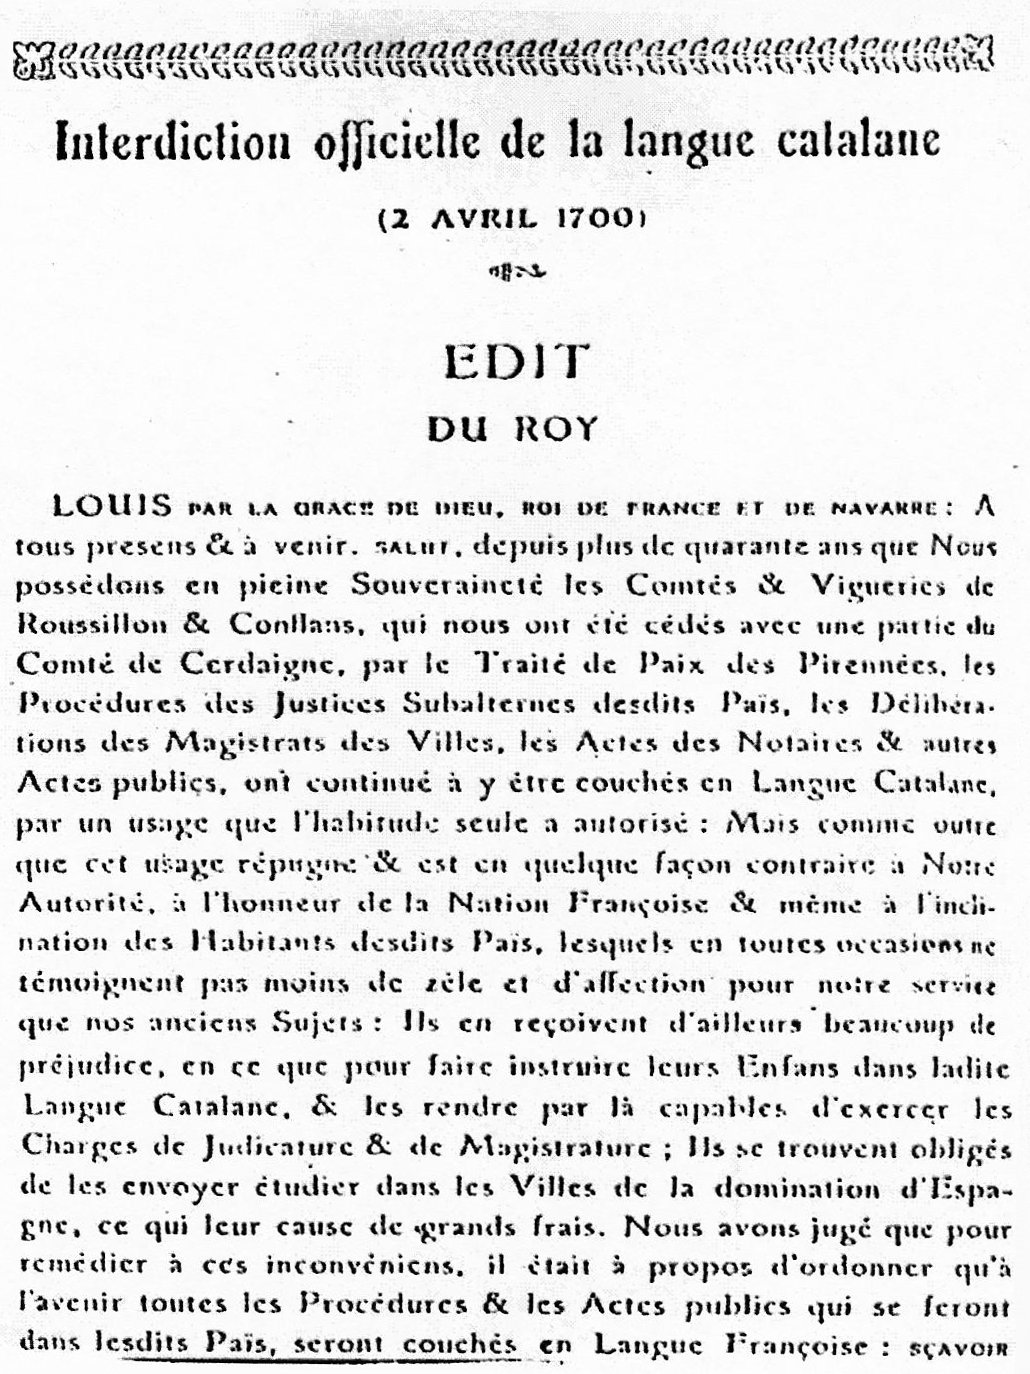 Official Decree Prohibiting The Catalan Language In France